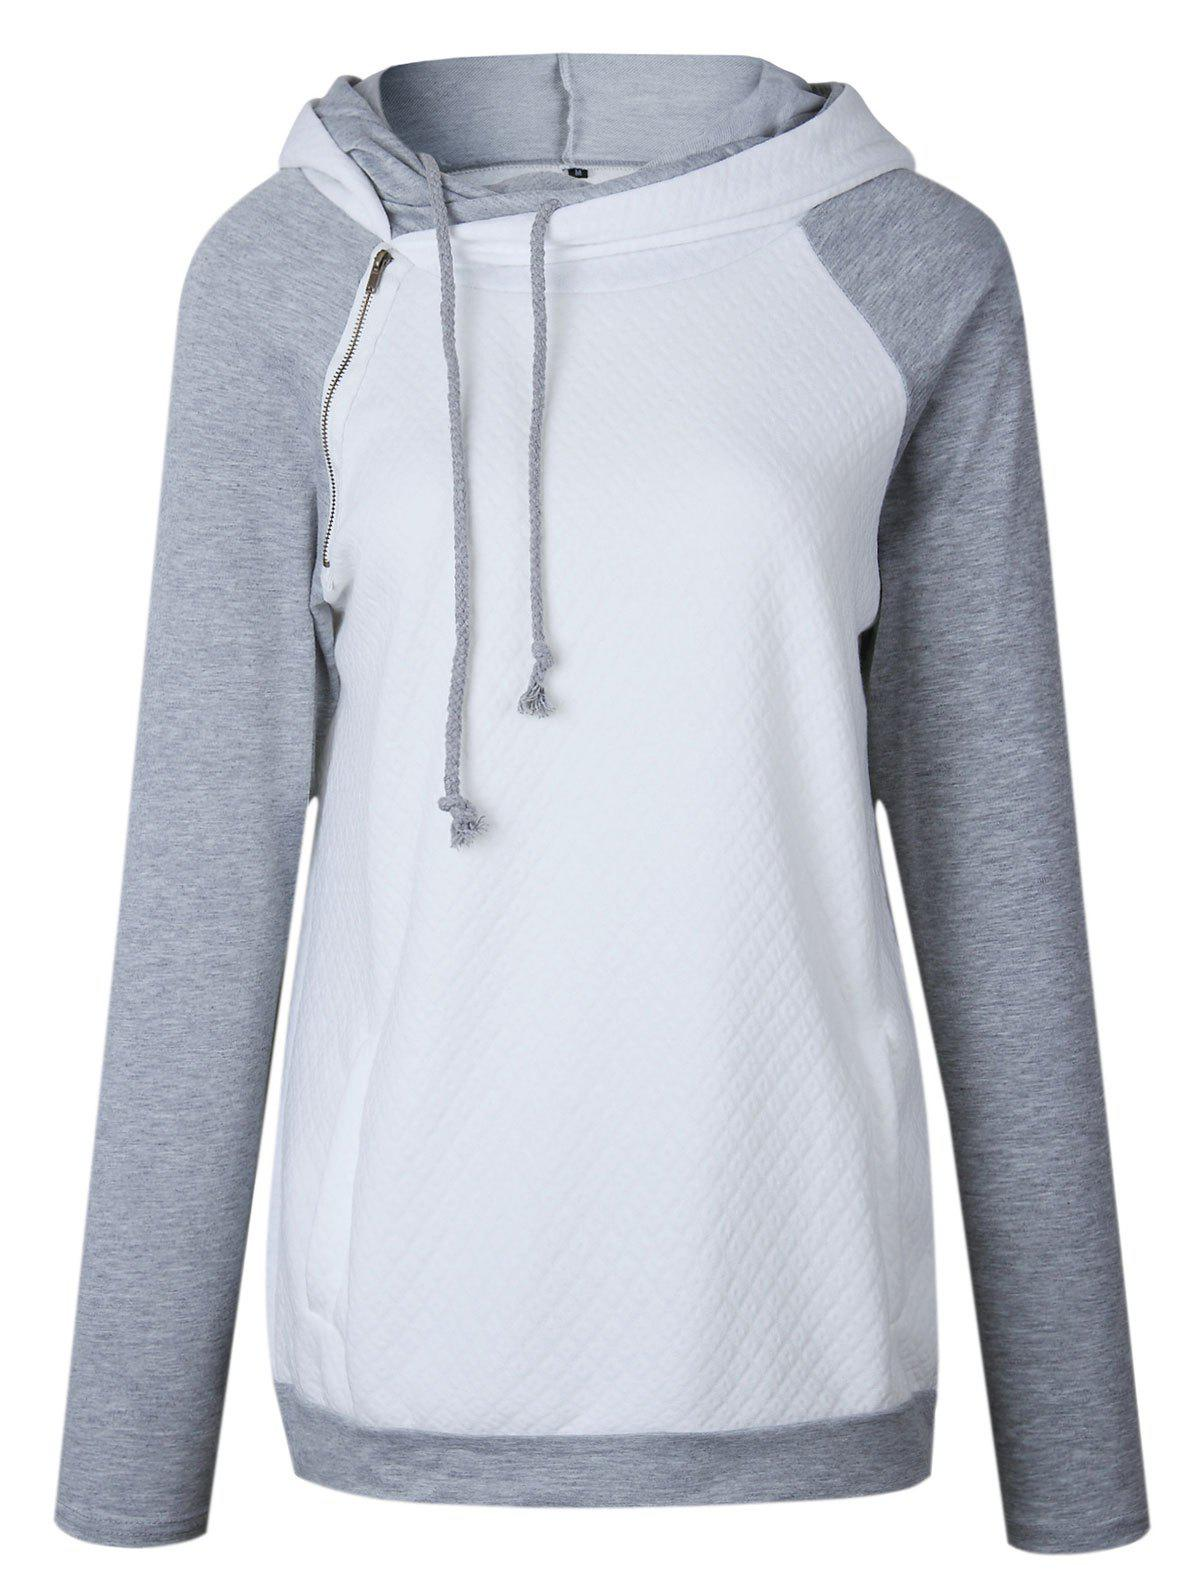 Raglan Sleeve Zippered Embellished Mock Neck Hoodie - WHITE S